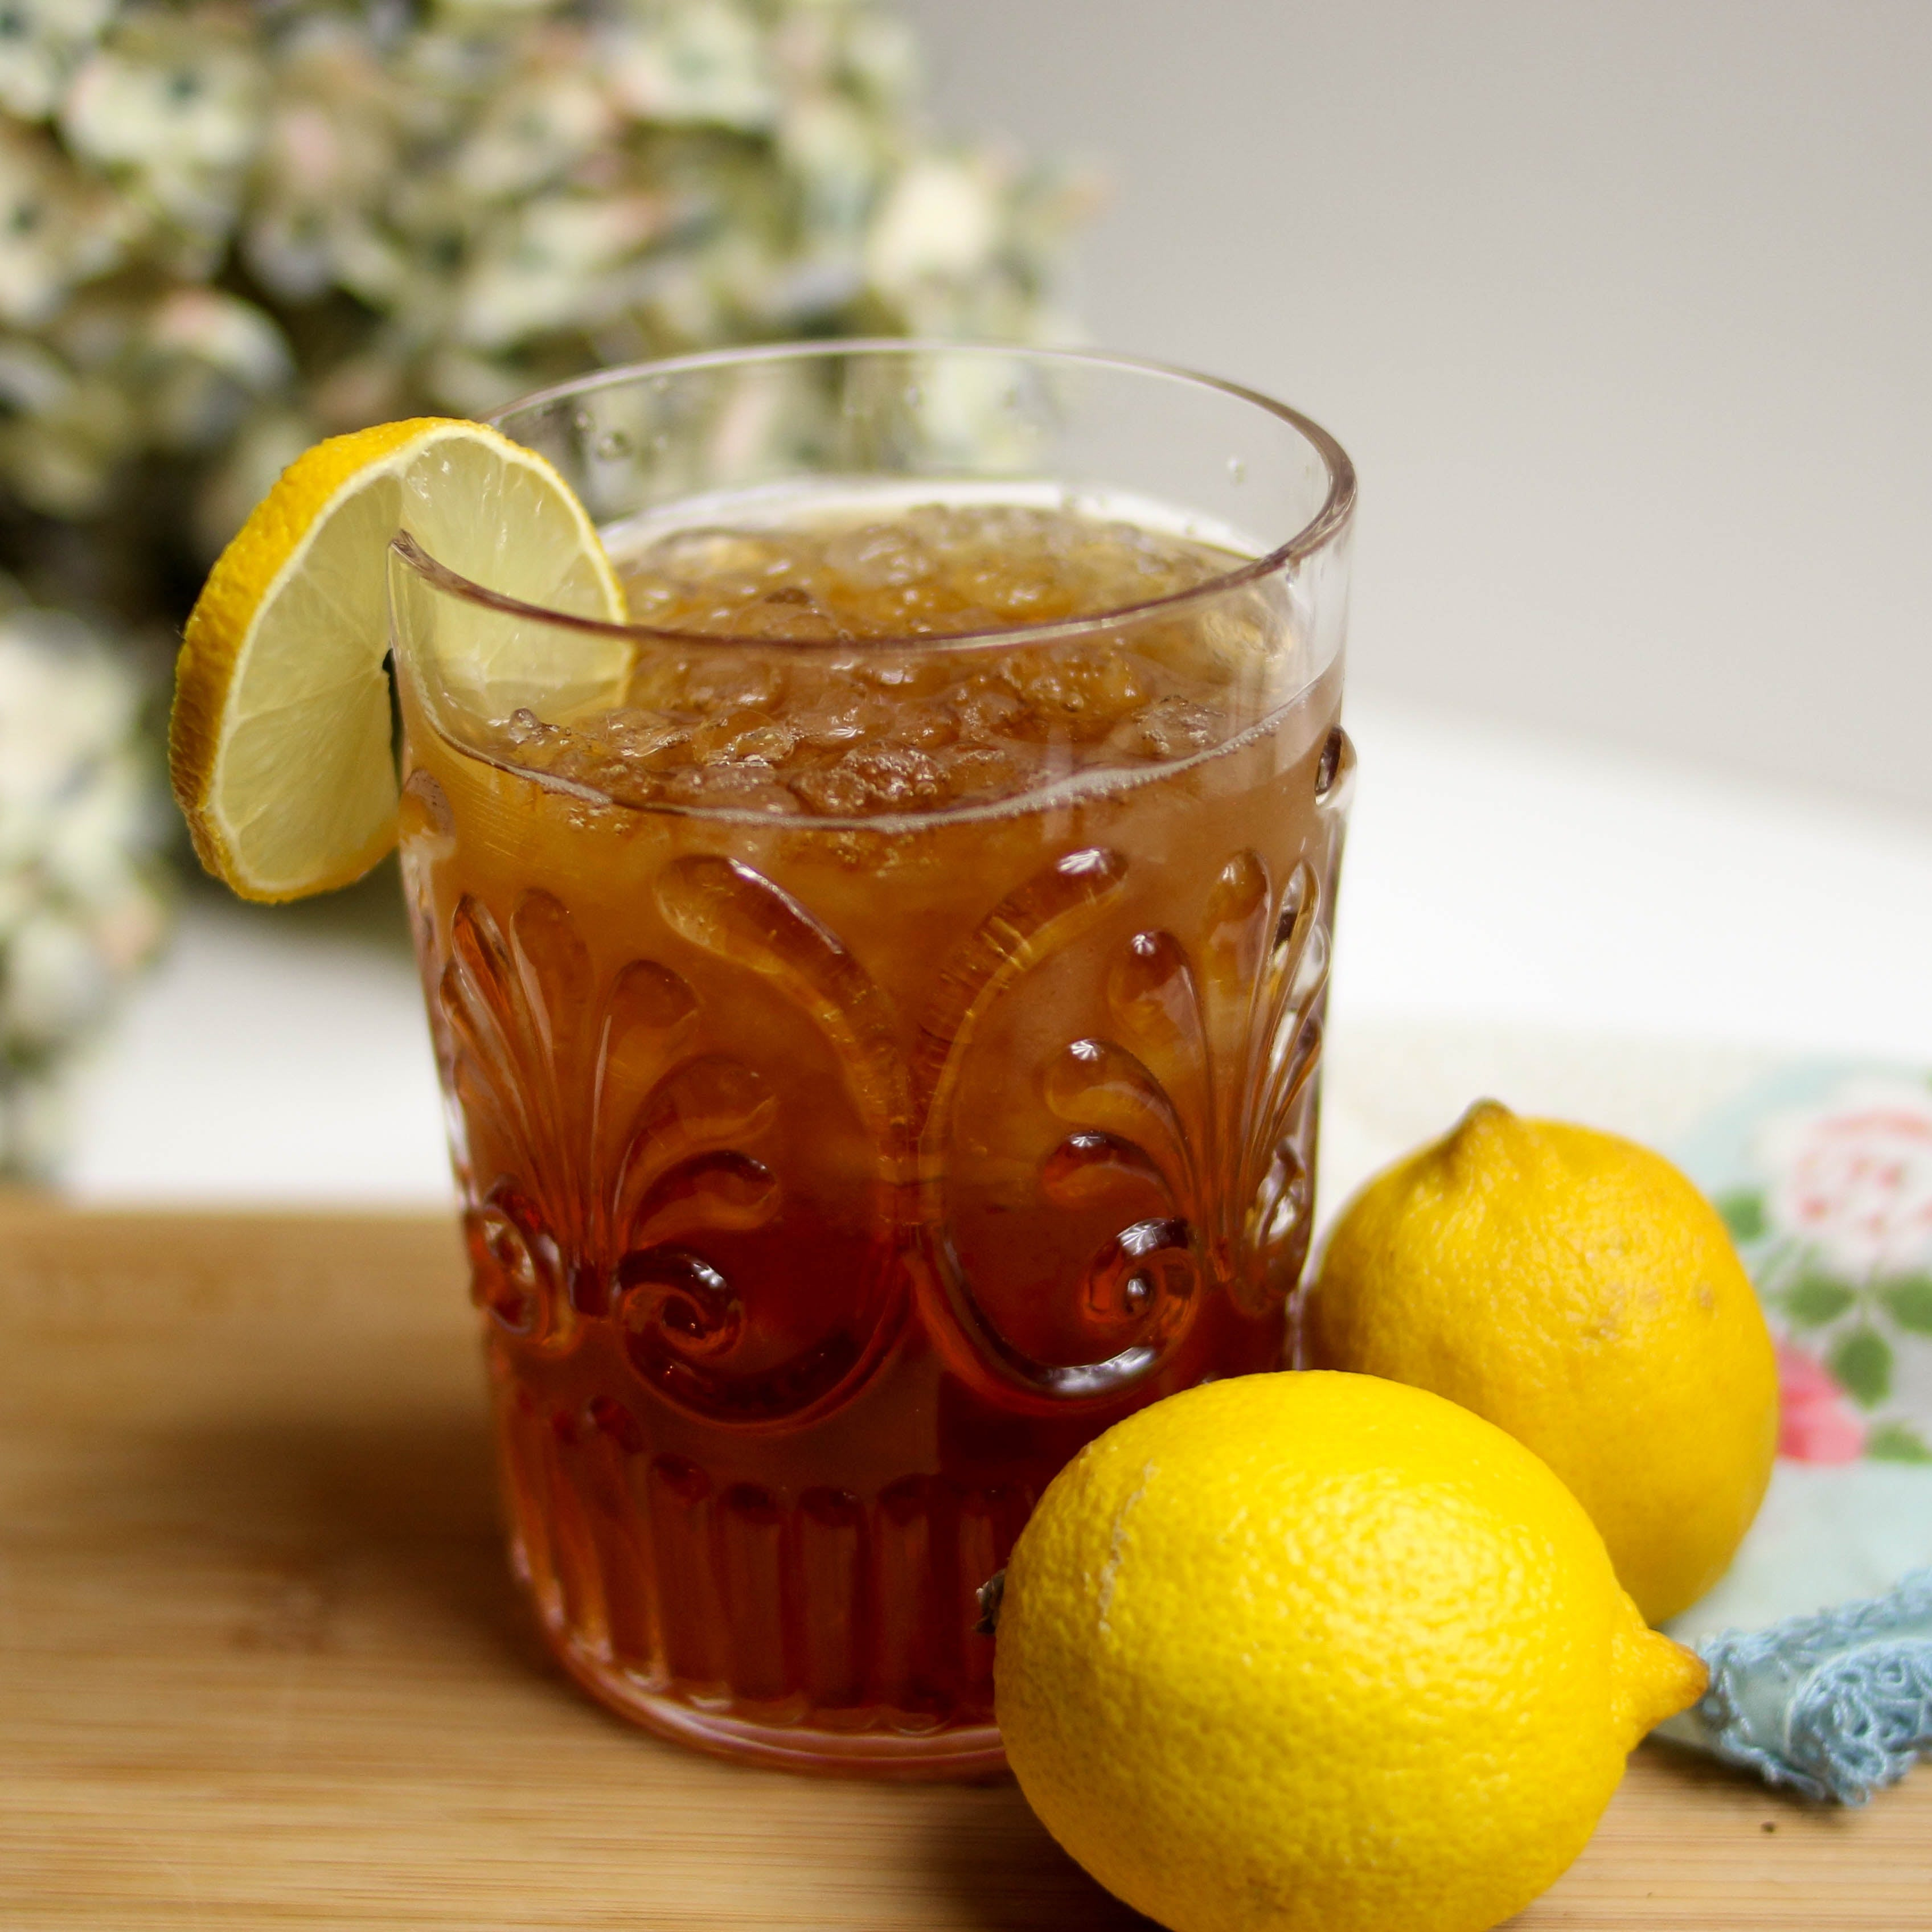 Ginger Lemon Herbal Drink - Rich in antioxidants